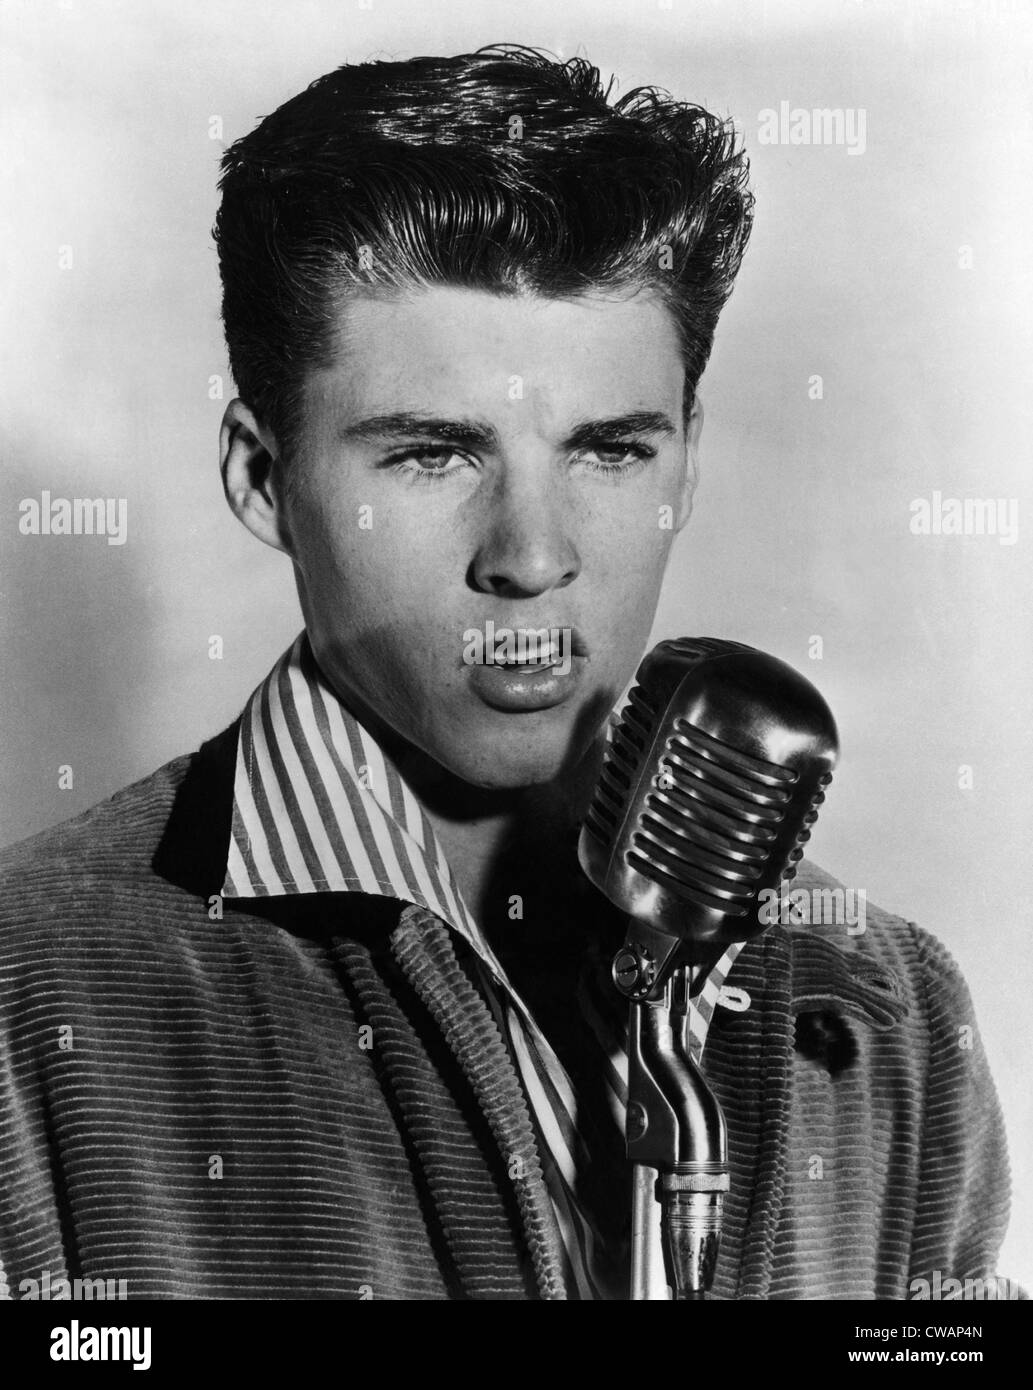 Singer And Teen Idol Ricky Nelson, (1940-1985), C. 1957